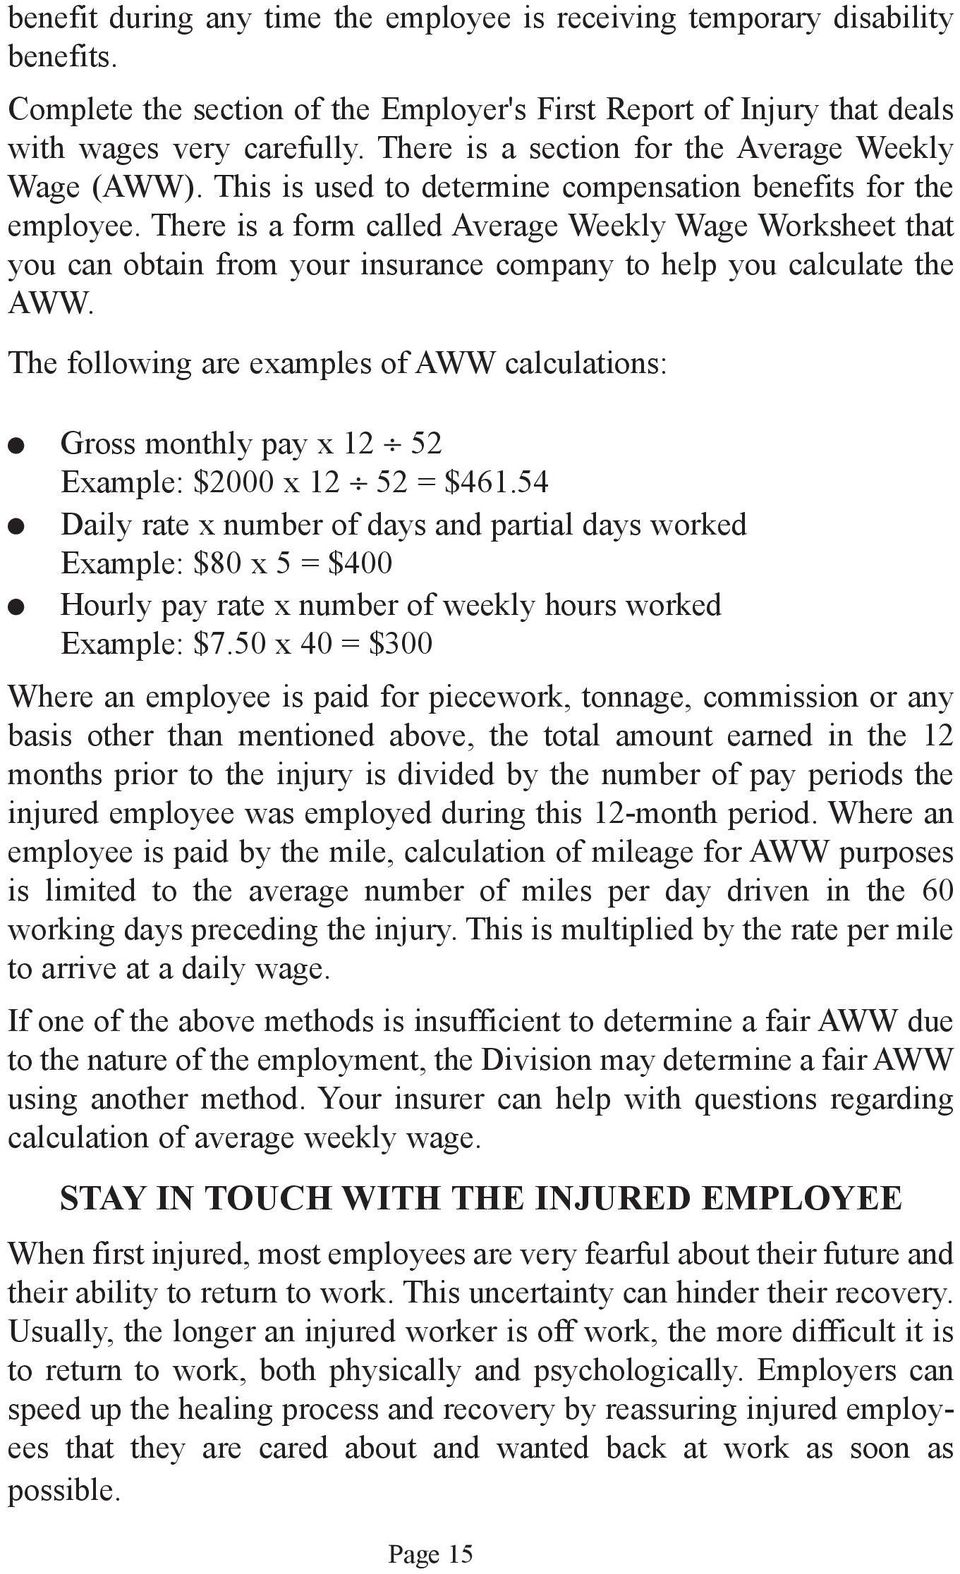 There is a form called Average Weekly Wage Worksheet that you can obtain from your insurance company to help you calculate the AWW.